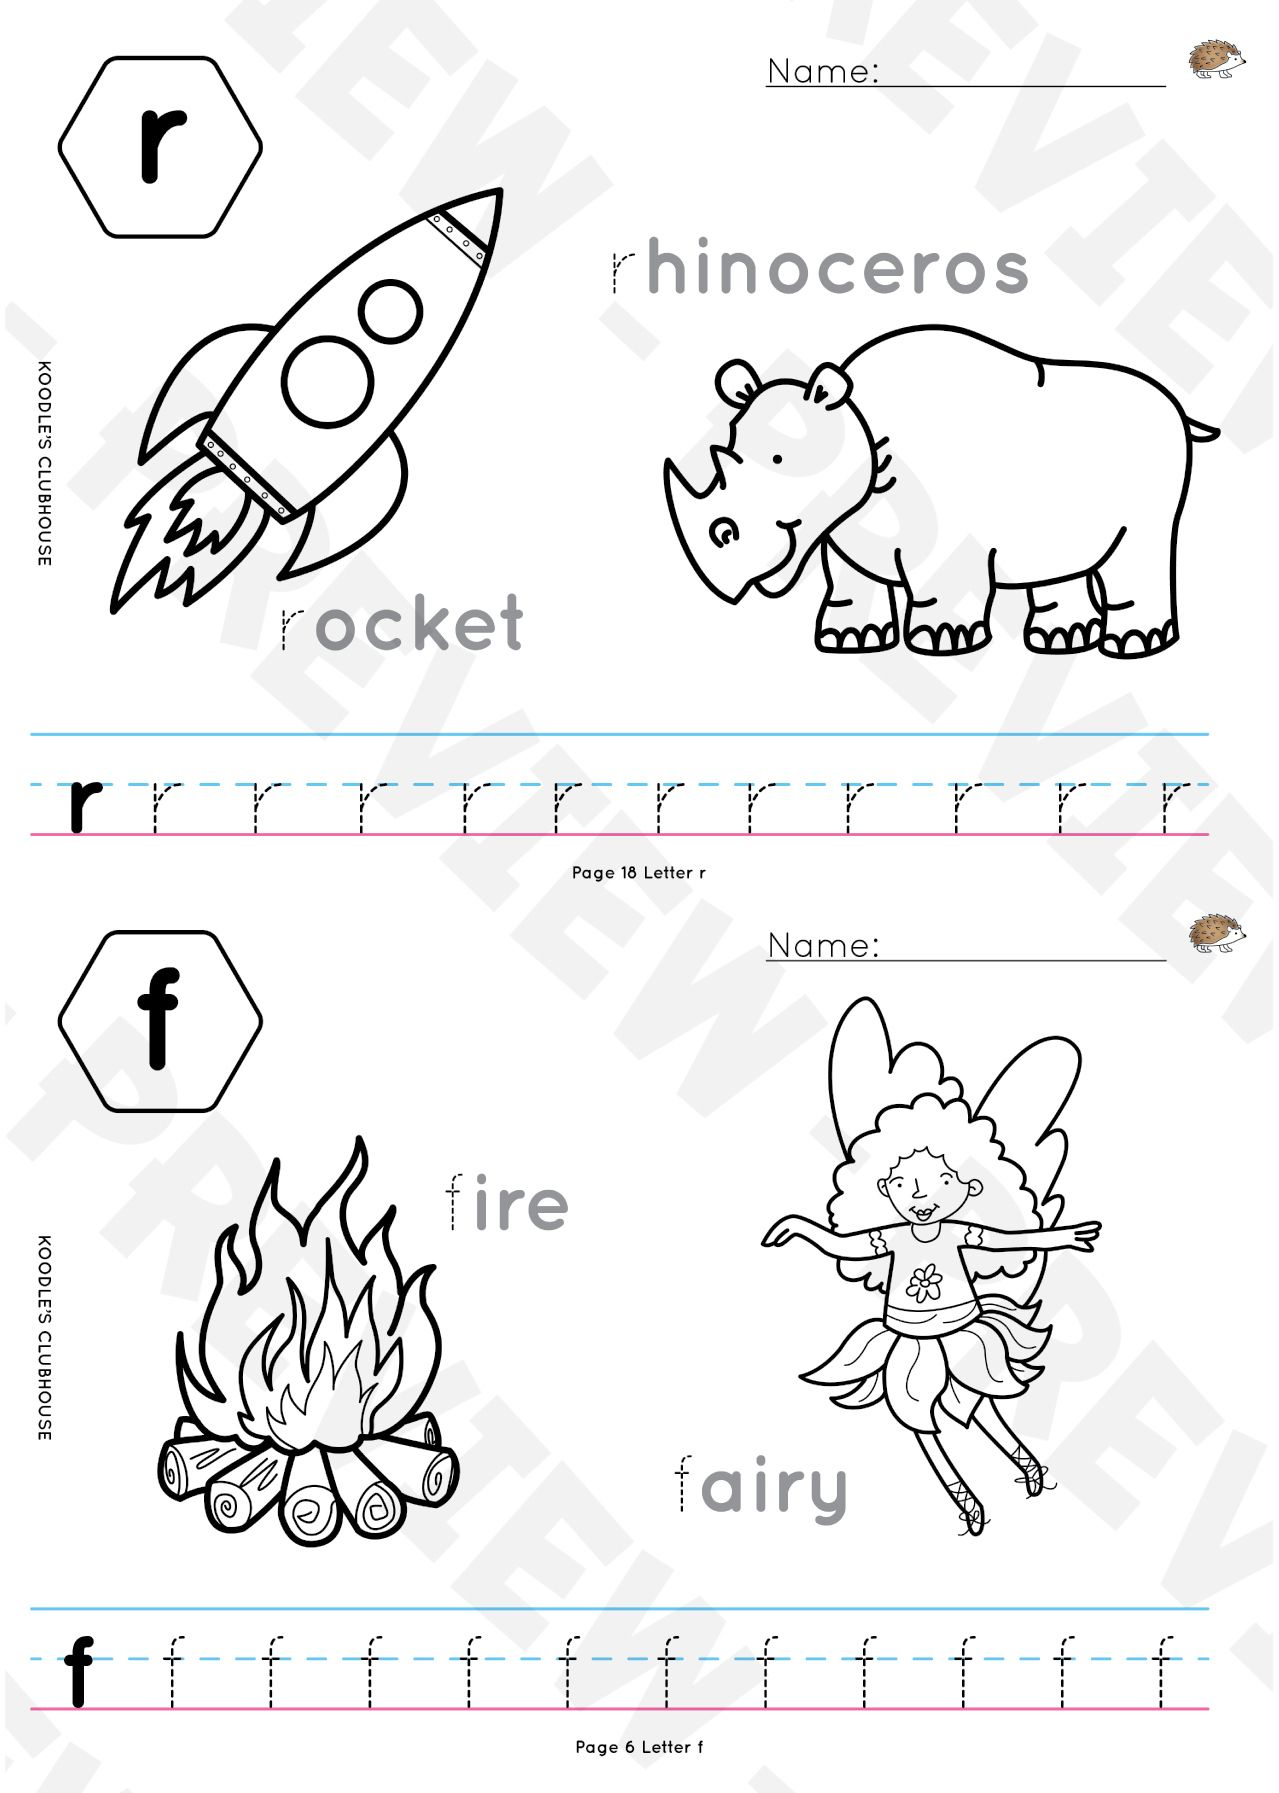 A to Z tracing worksheets Tracing worksheets, Letter